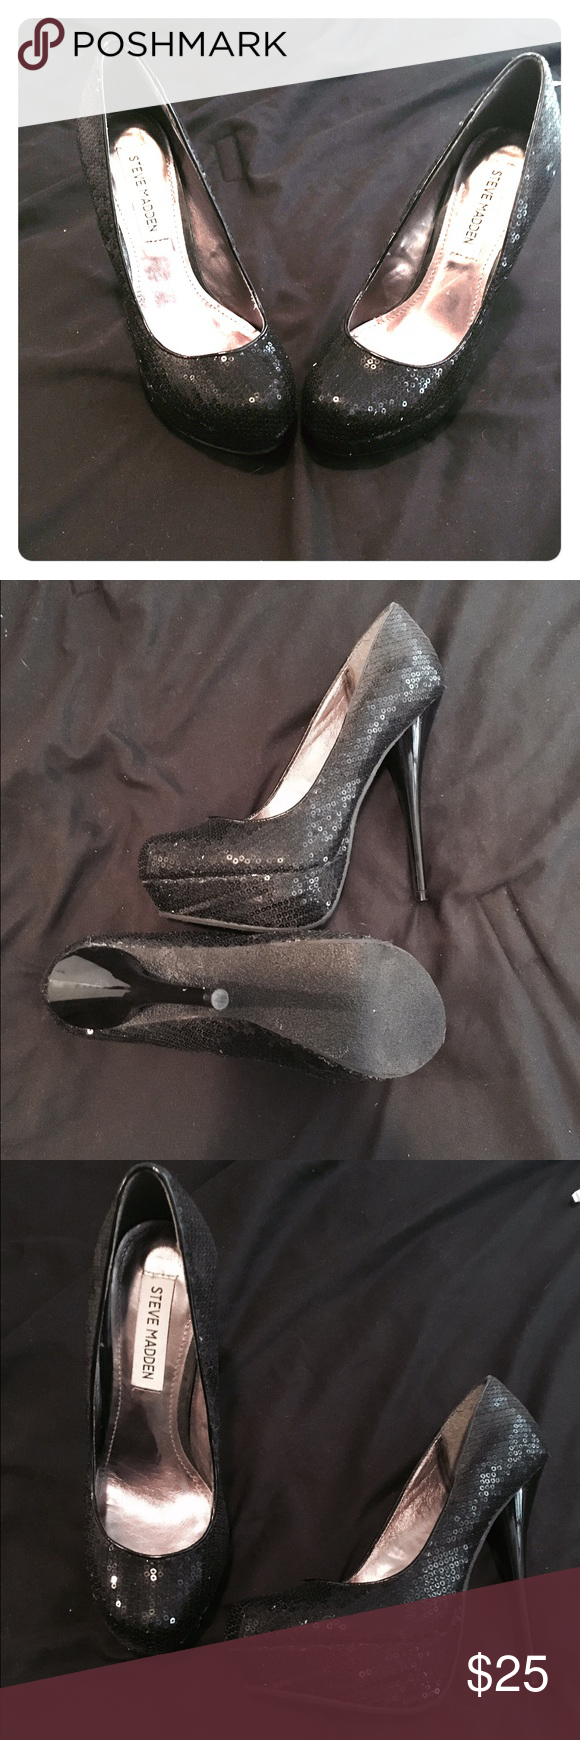 New Steve Madden Black Sequined Pump 6.5 New Steve Madden Black Sequined Pump 6.5. I don't have the original box but item was never worn. I have provided pic of shoe sole to show no wear. Steve Madden Shoes Heels